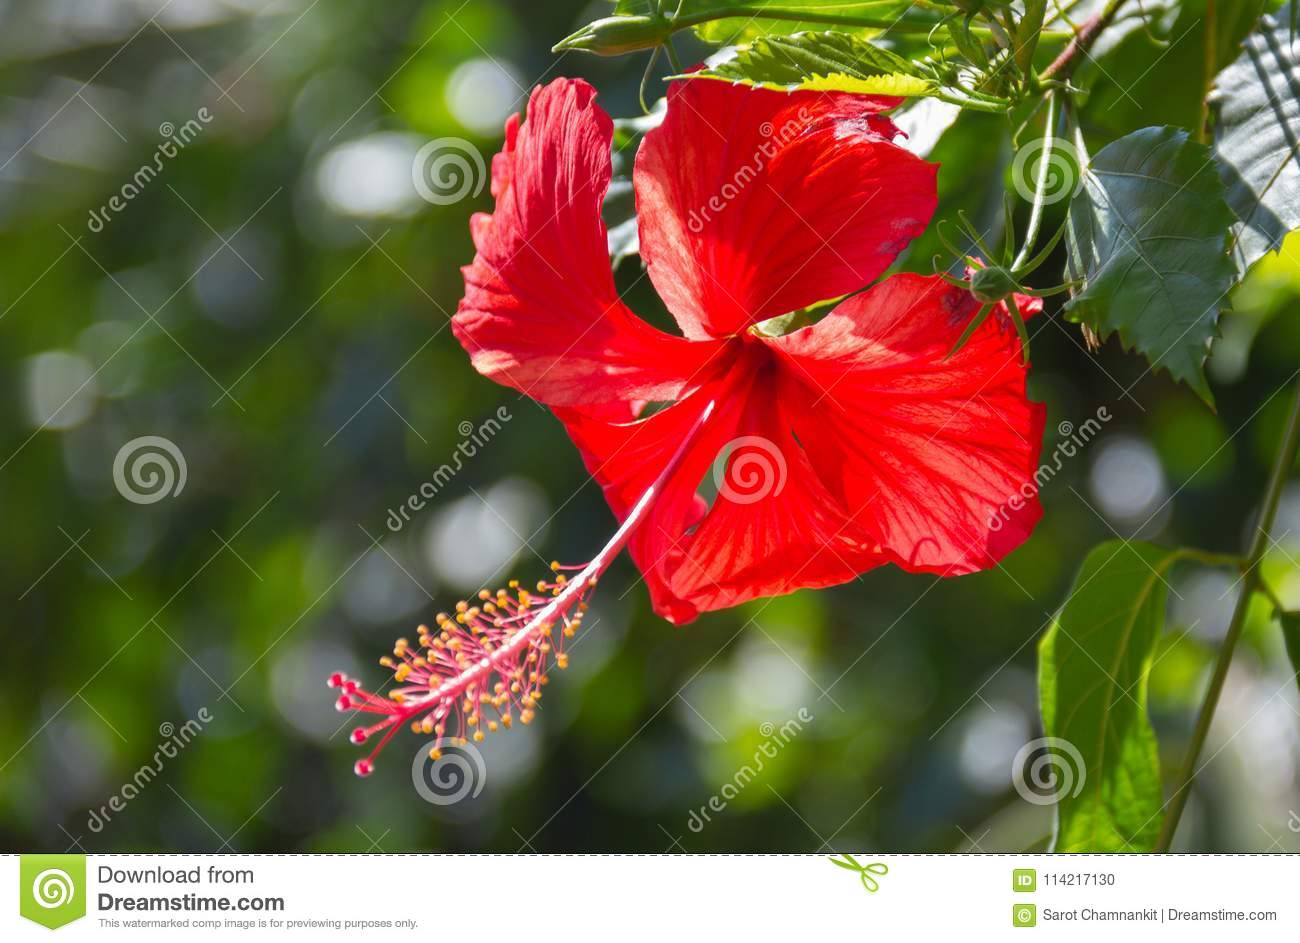 Hibiscus scientific name hibiscus rosa sinensis stock photo image hibiscus scientific name hibiscus rosa sinensis red flowers bloom beautifully on a tree in the garden among the natural background izmirmasajfo